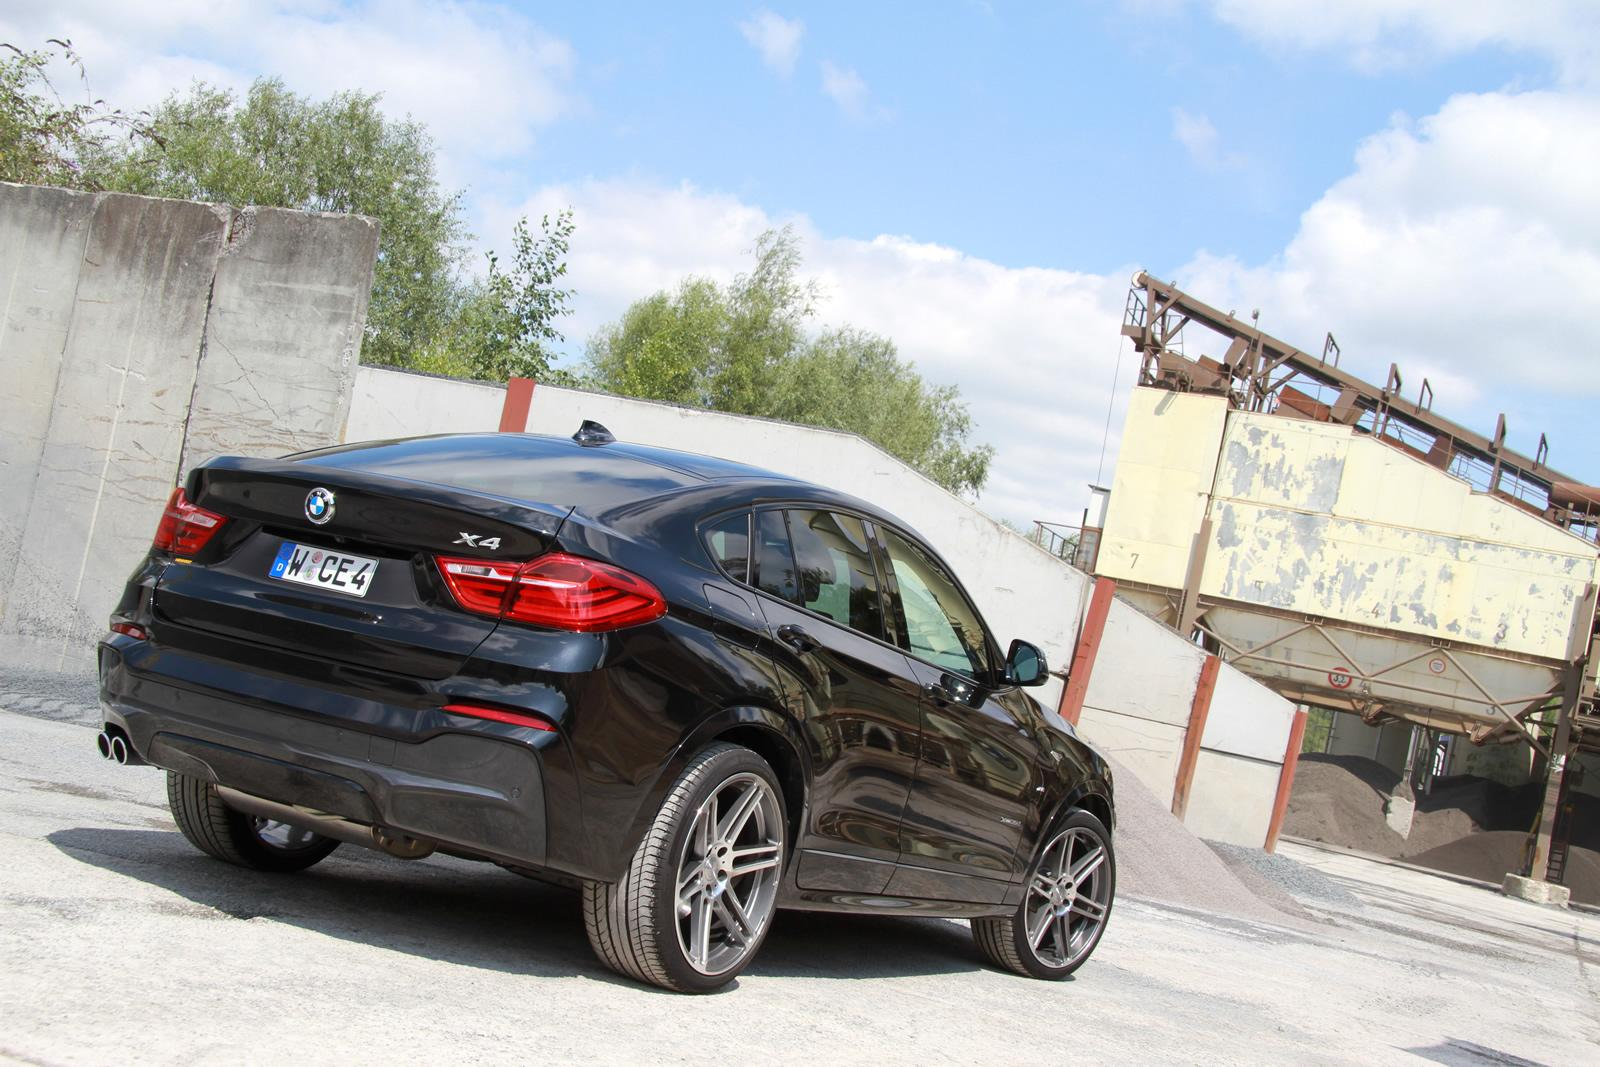 Manhart S Upgrade For The Bmw X4 Xdrive35i Takes It Up To